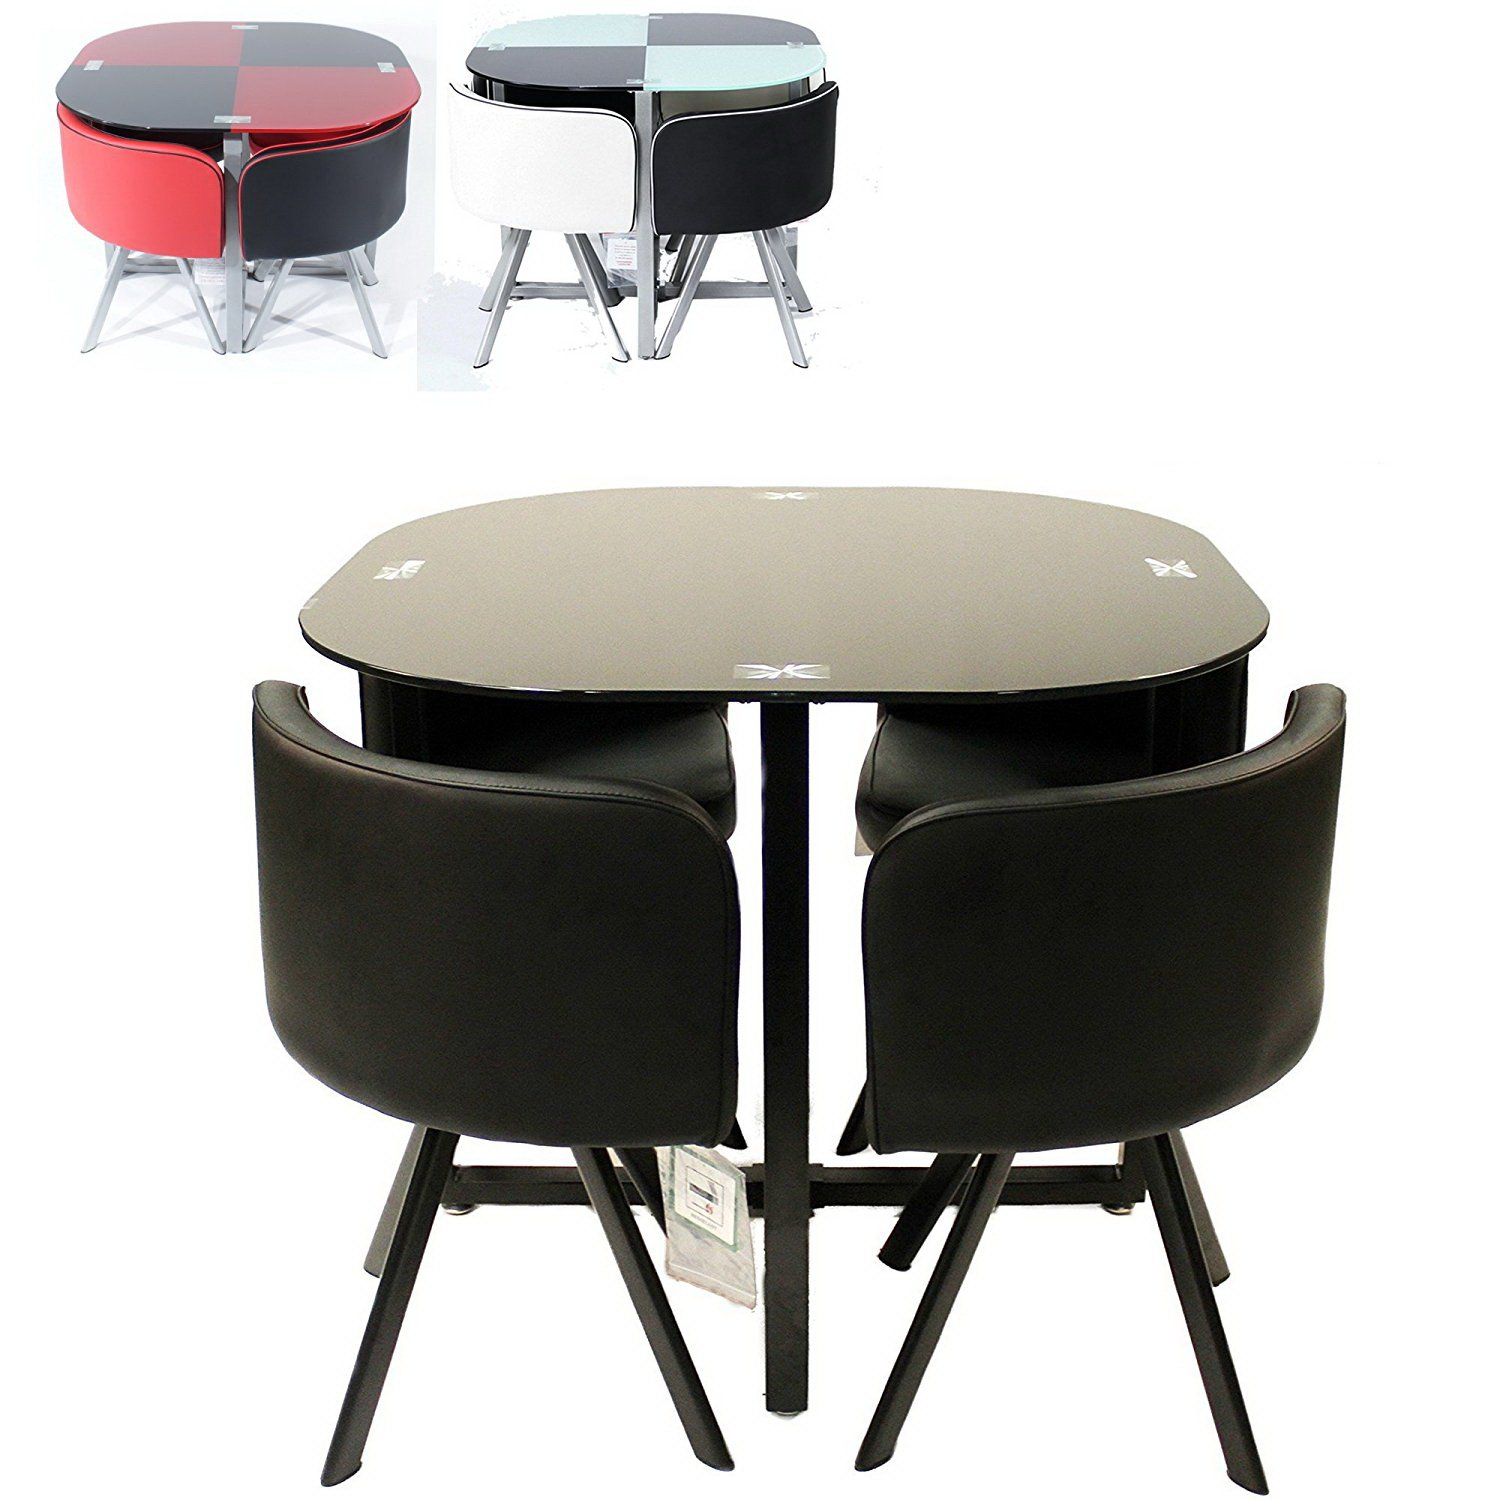 Stowaway kitchen table and stools set wow blog for Stowaway dining table